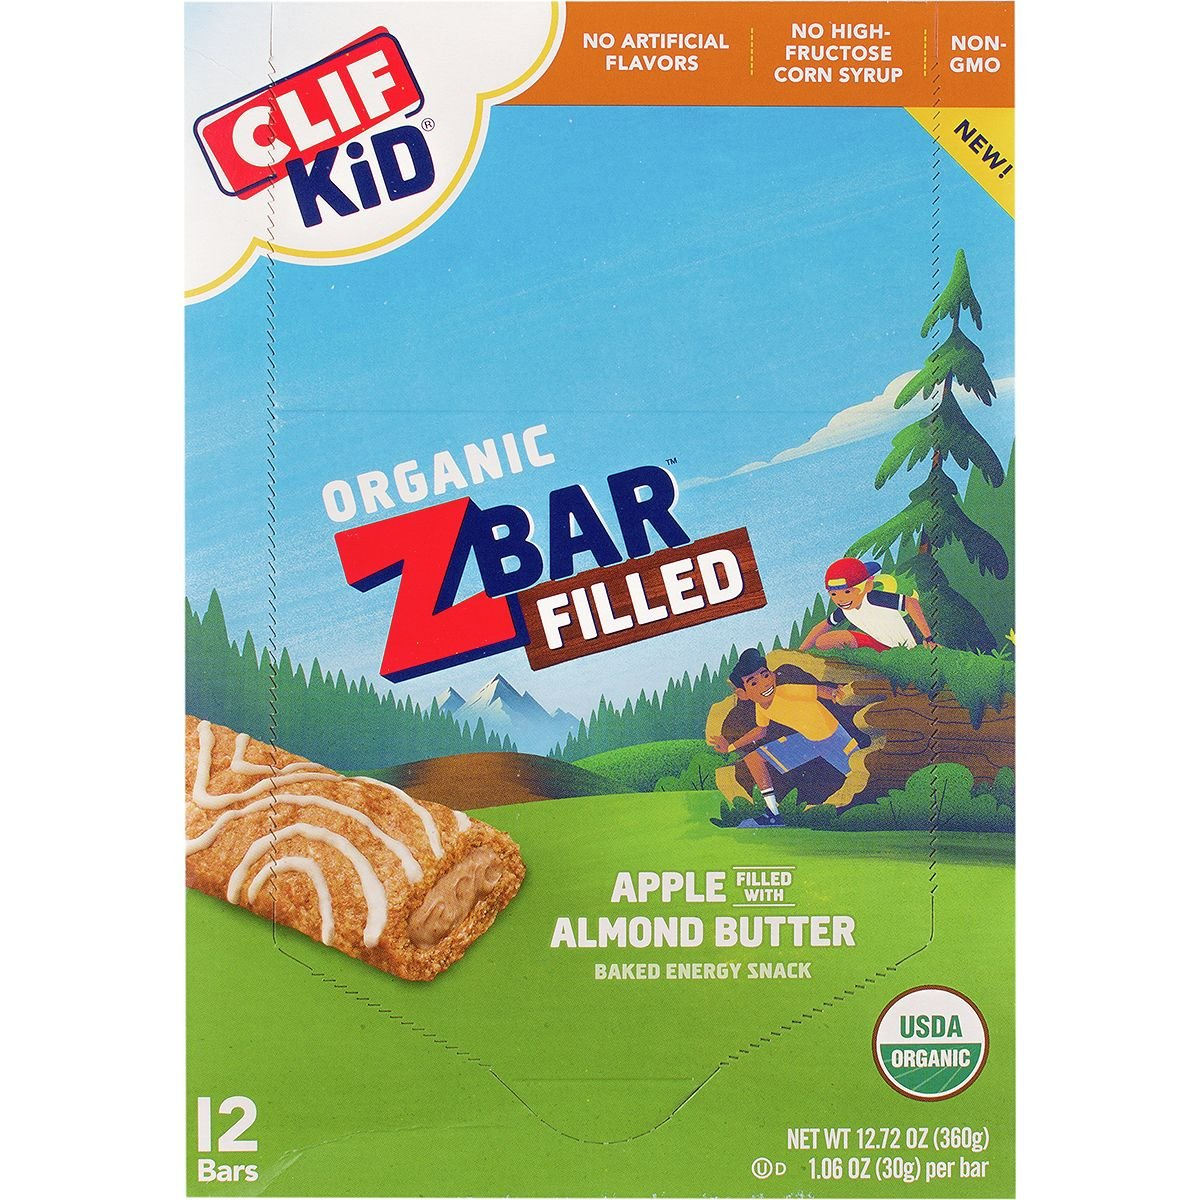 9e2d2091eda Zbar filled pack apple almond butter one size unboxed jpg 1200x1200 Unboxed  cereal